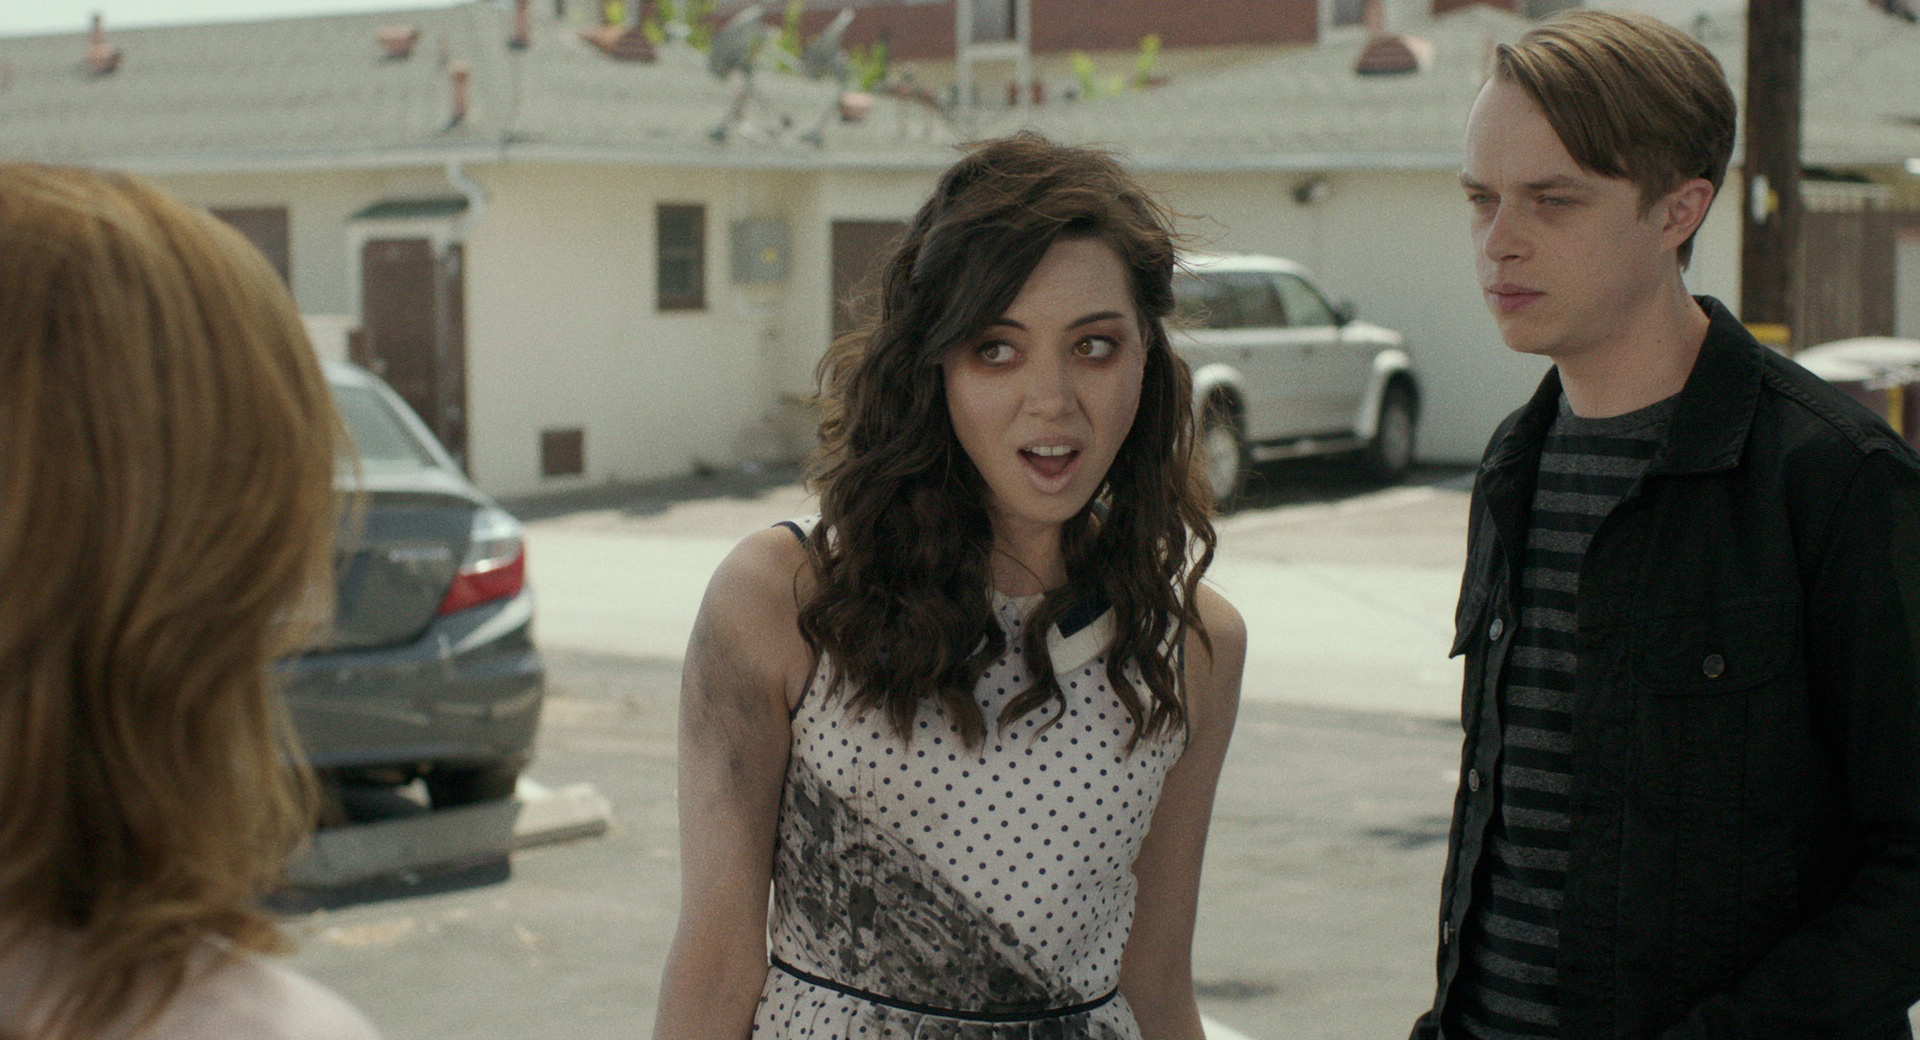 Aubrey Plaza, center, plays Beth Slocum in Life After Beth